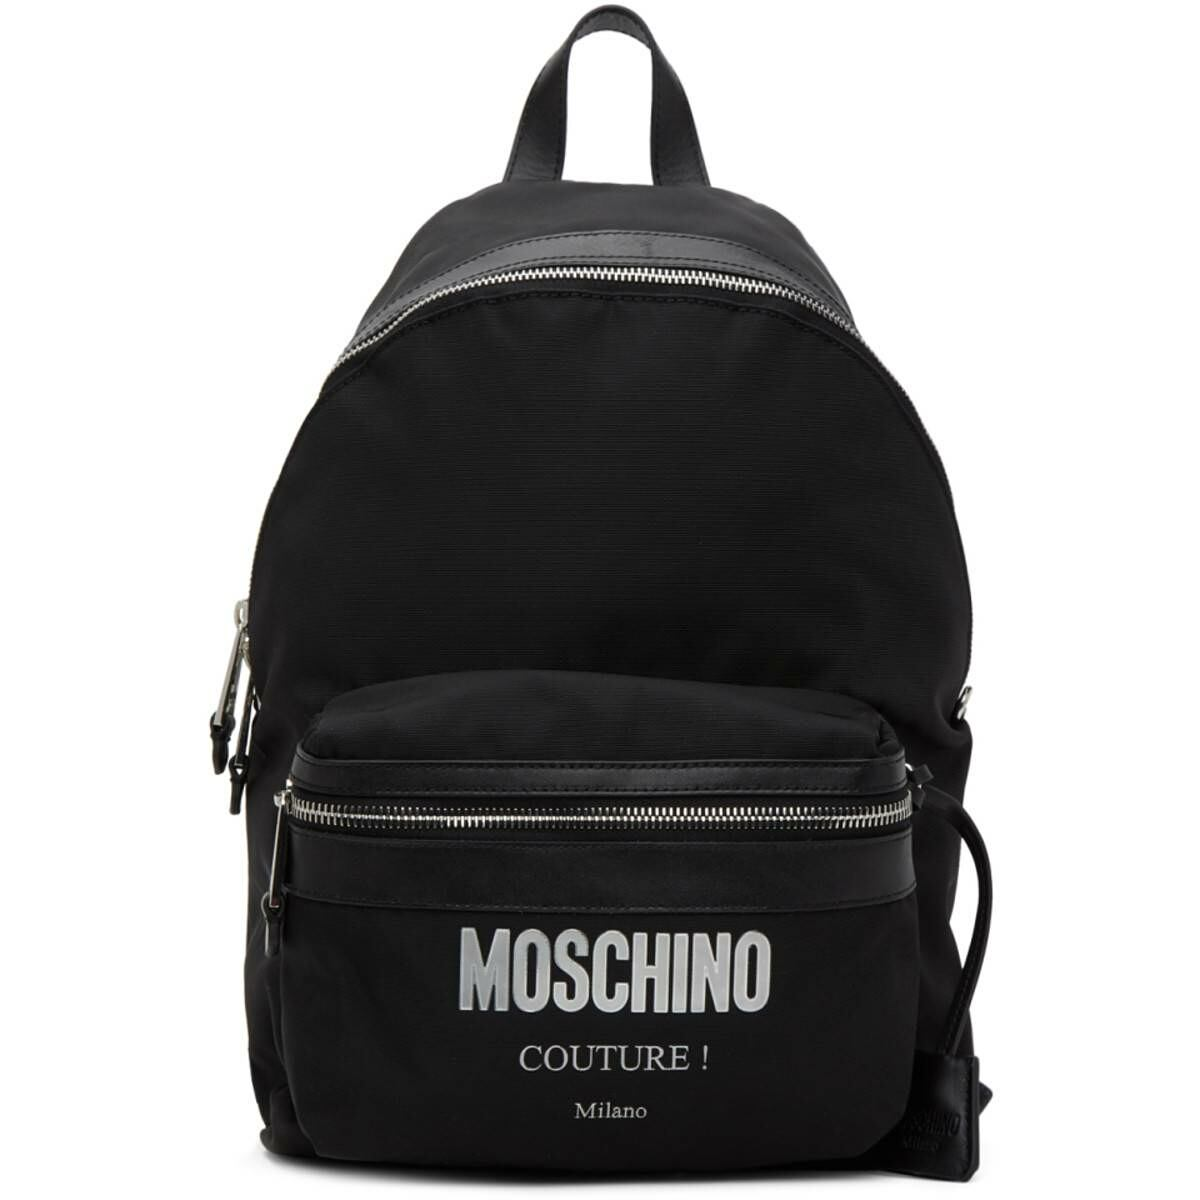 Moschino Black Canvas Couture Backpack Ssense USA MEN Men ACCESSORIES Mens BAGS